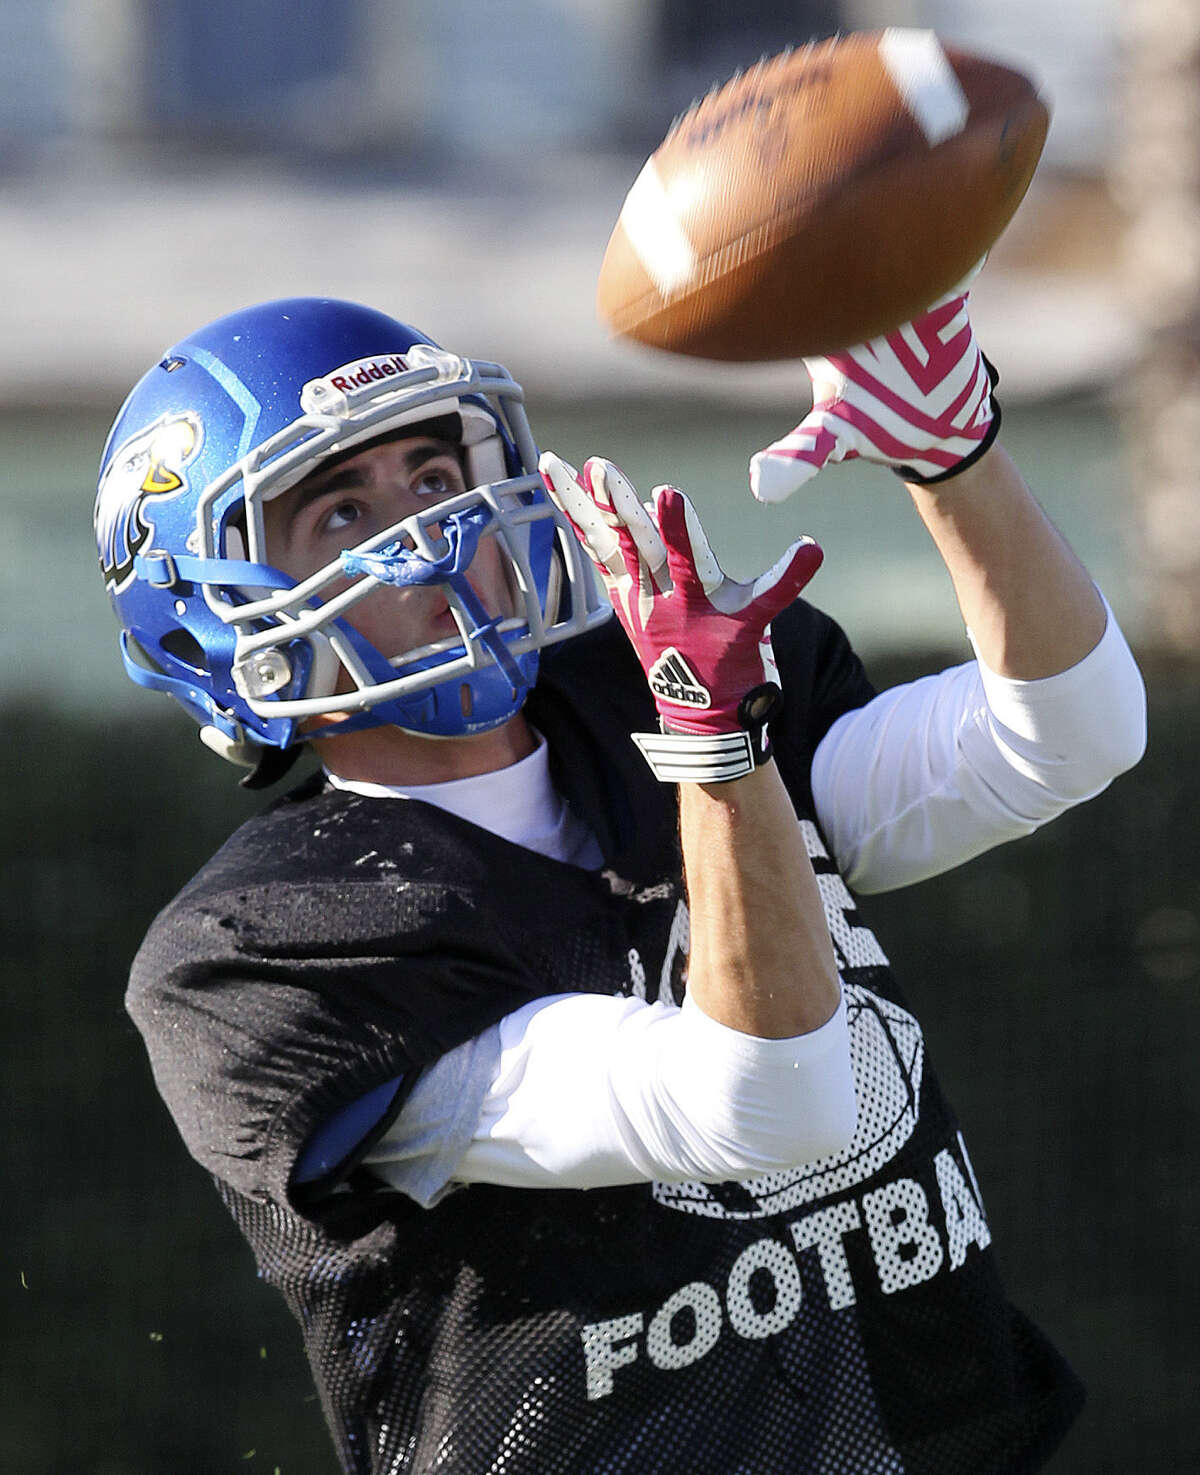 Wide receiver Ethan Leos also is a big part of the Castle Hills First Baptist offense, accounting for 33 TDs.